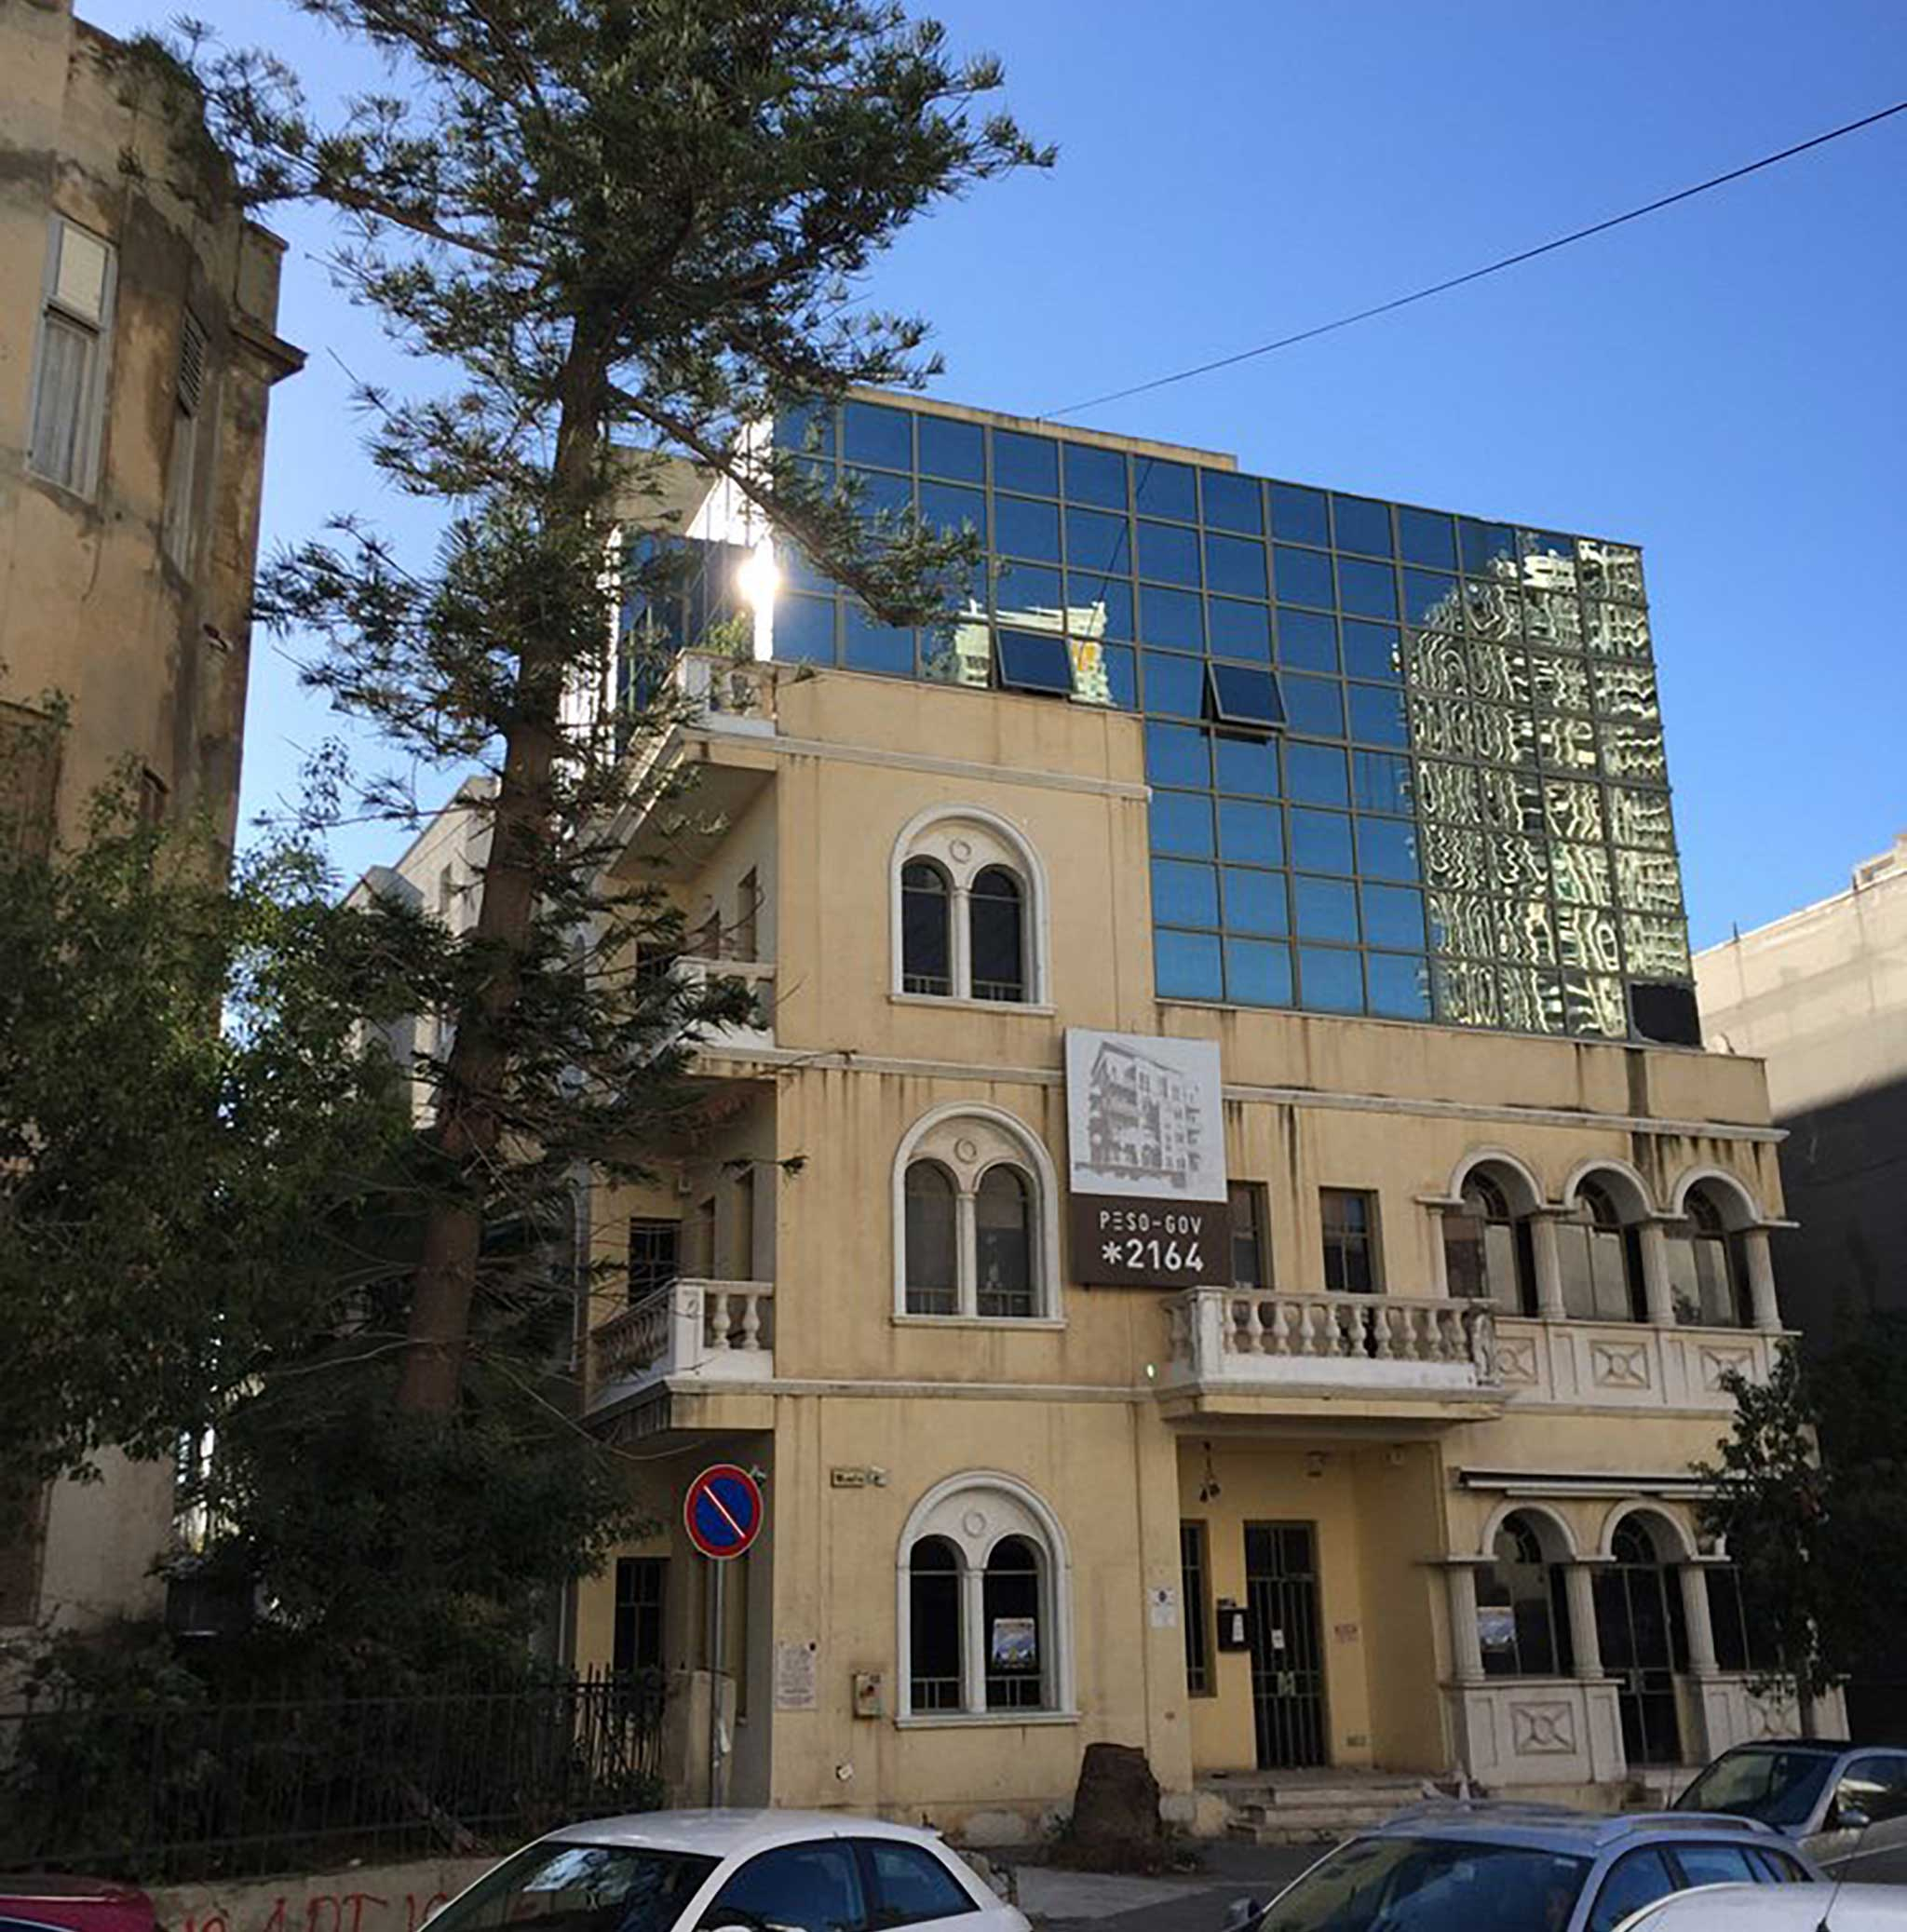 16 Levontin Street on Tel Aviv audio tour The Electrifying Story of Gan HaHashmal and Its Architecture